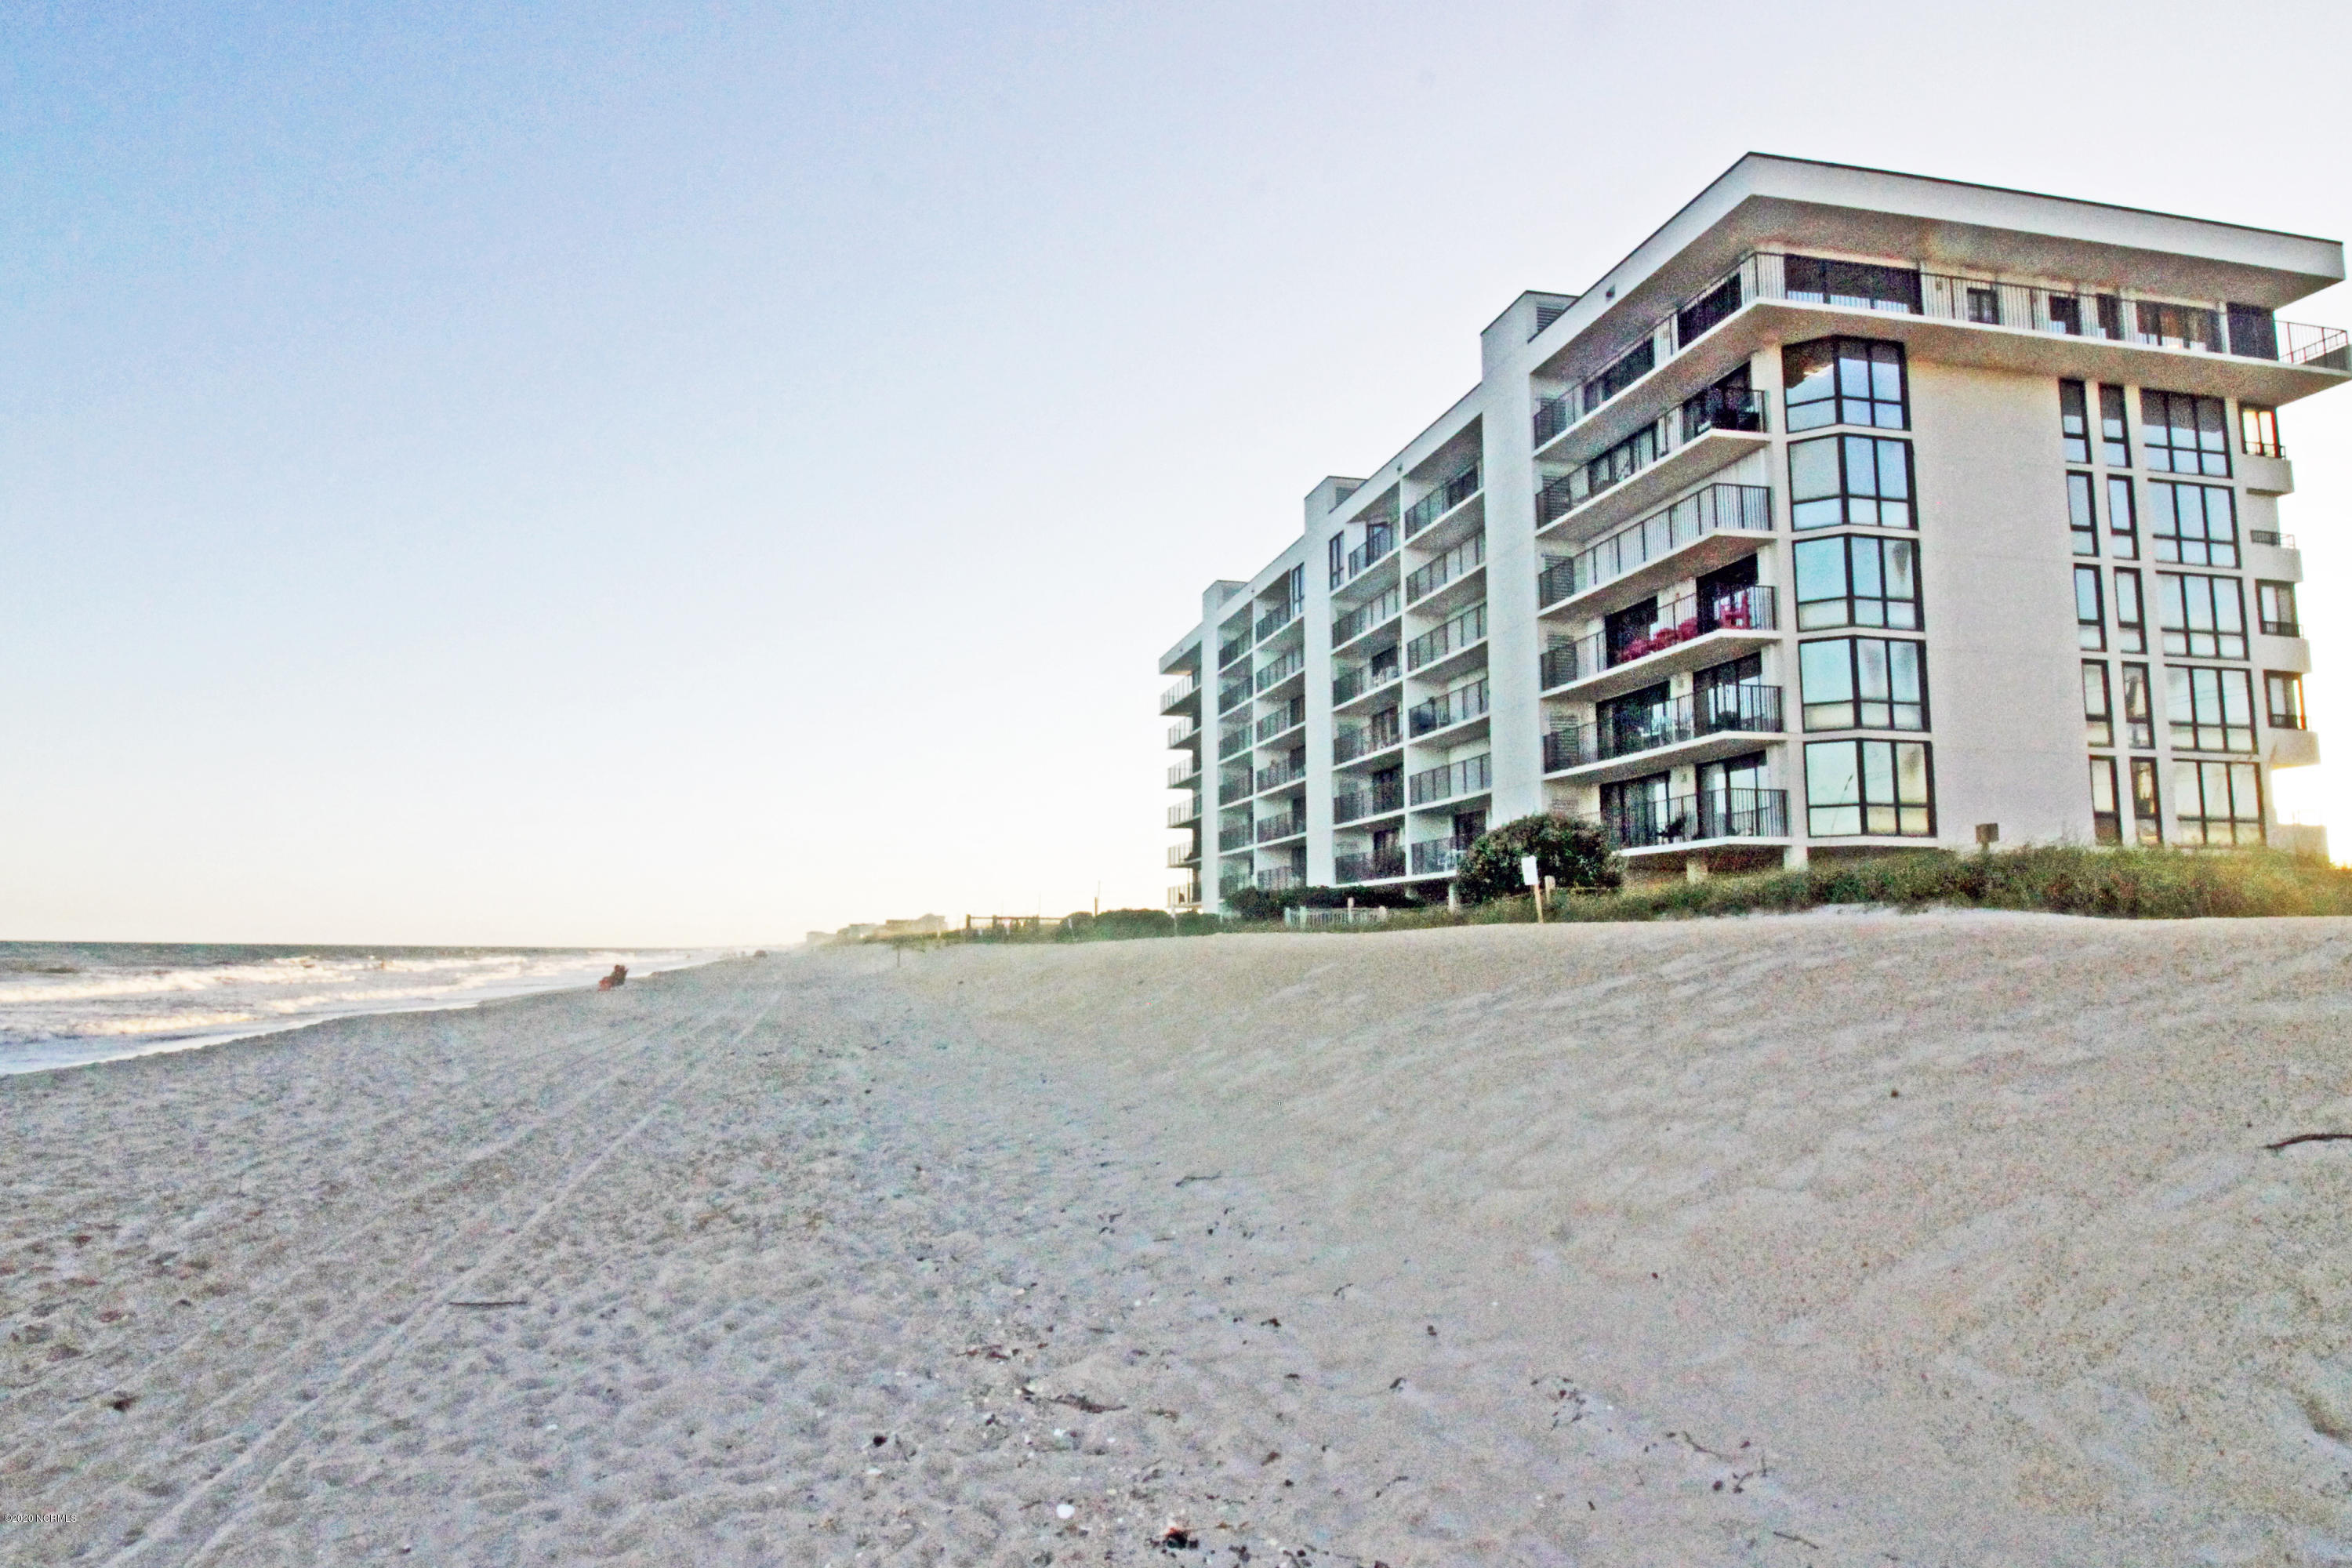 4110 Island Drive Drive, North Topsail Beach, North Carolina 28460, 3 Bedrooms Bedrooms, ,2 BathroomsBathrooms,Residential,For Sale,Island Drive,100228517